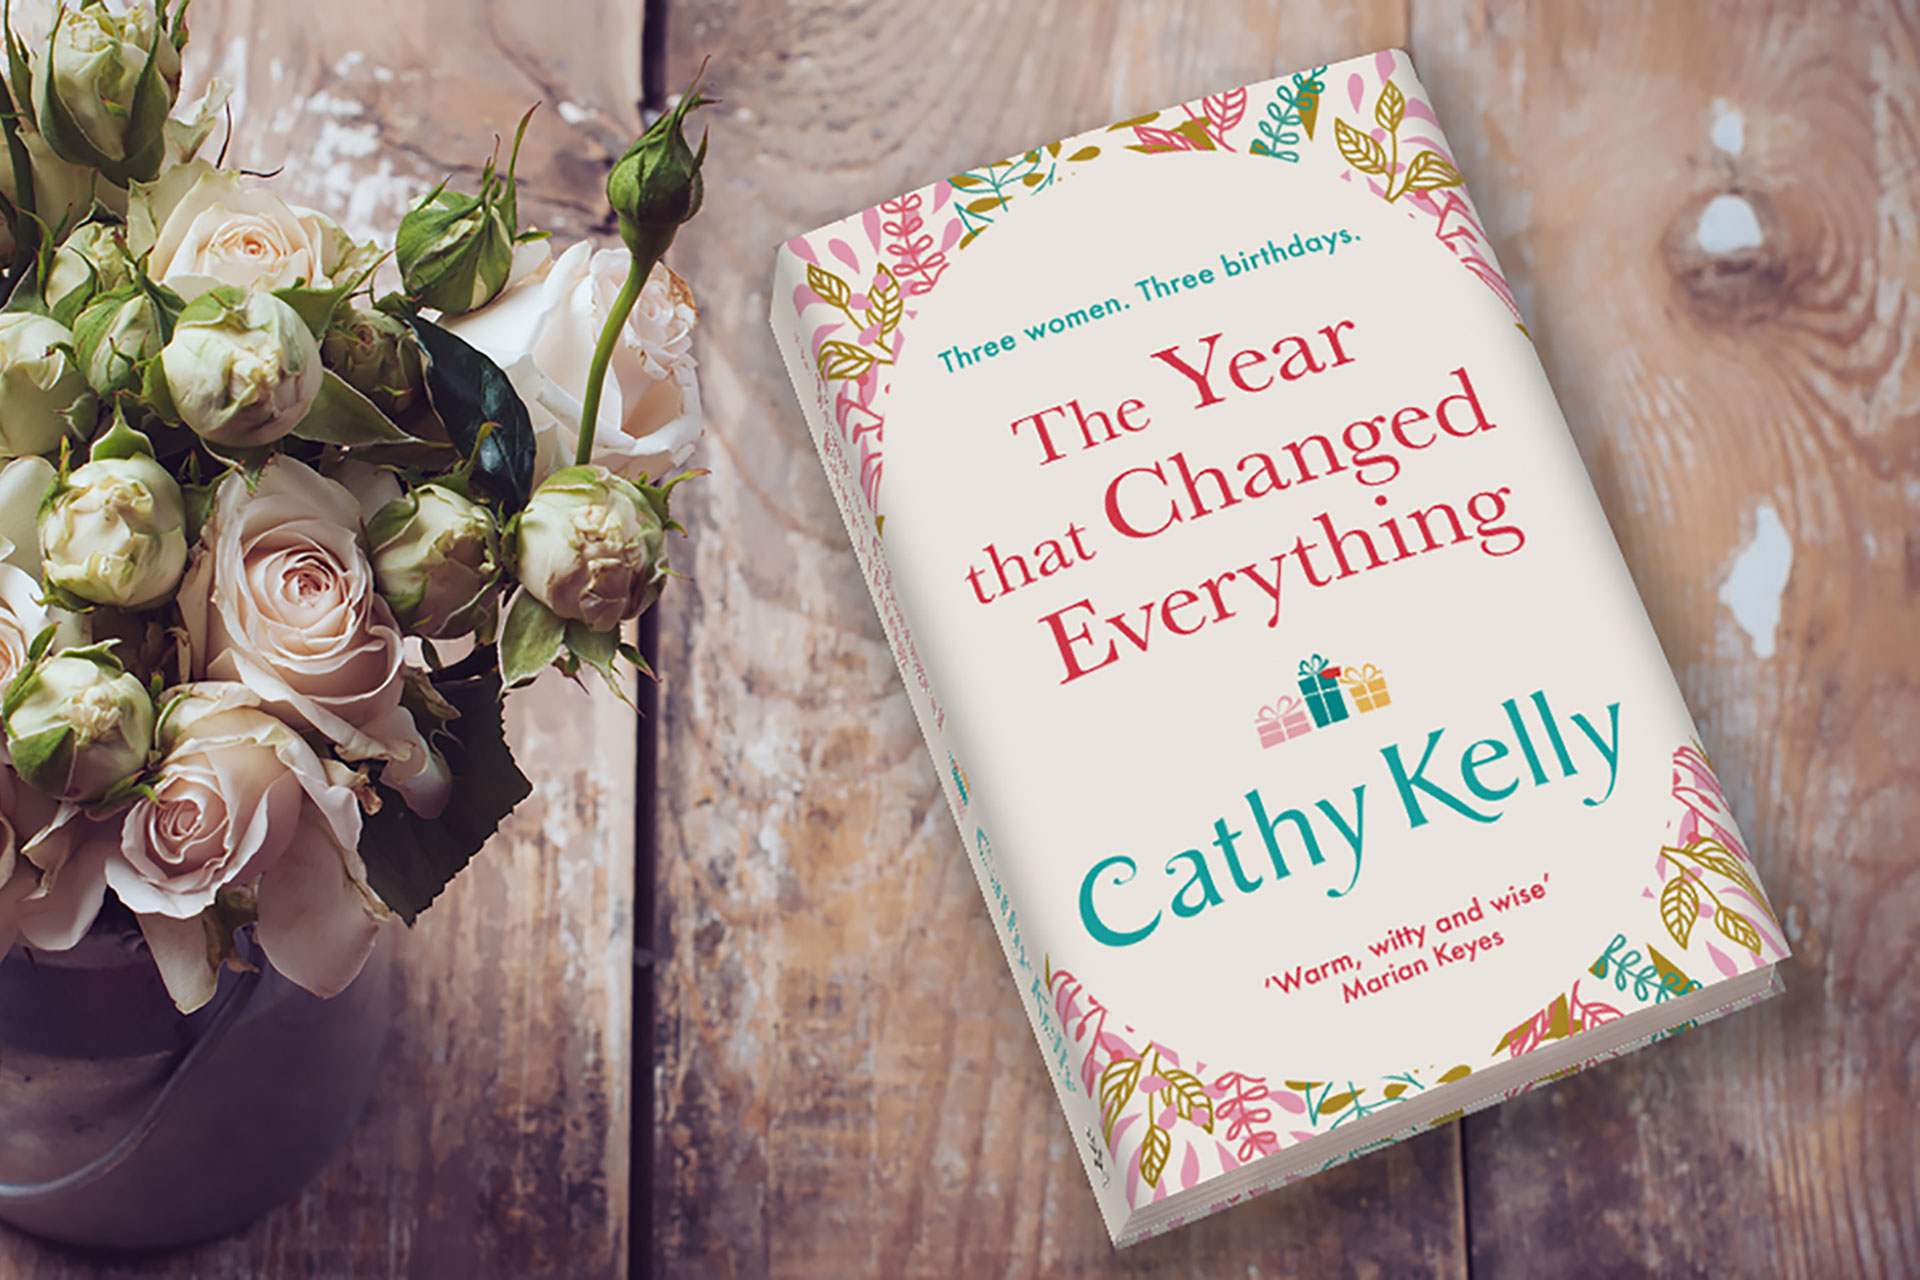 Cathy Kelly's The Year That Changed Everything Released Today!